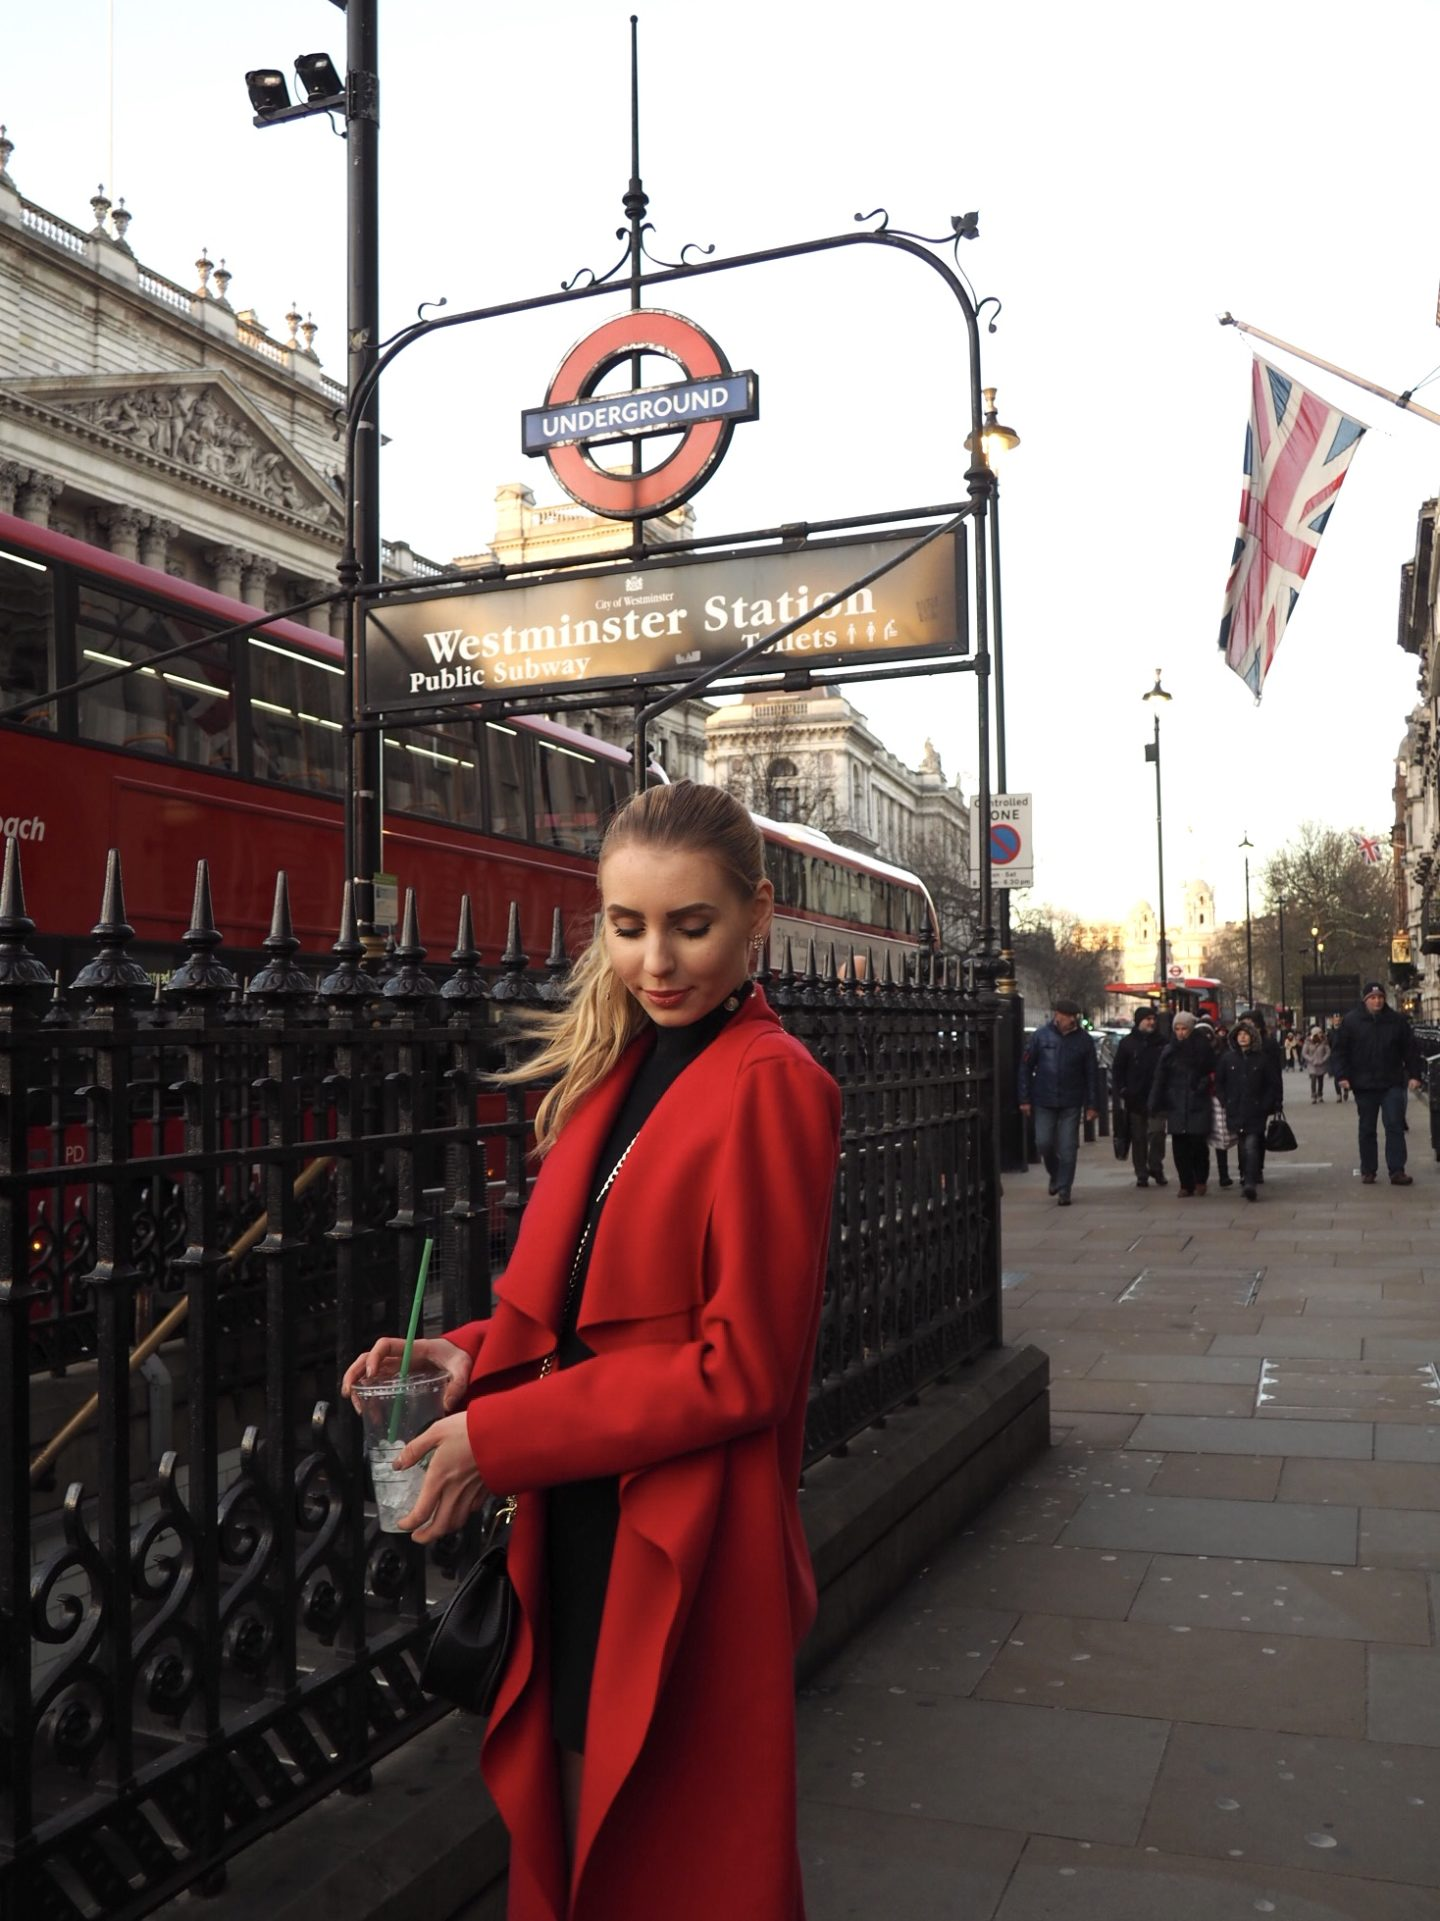 """The London fashion blogger """"Chic Pursuit """" is wearing a red waterfall coat with a black high neck dress with long sleeves, a black chain bag (Chloe drew dupe) and black over the knee boots in front of Westminster station."""